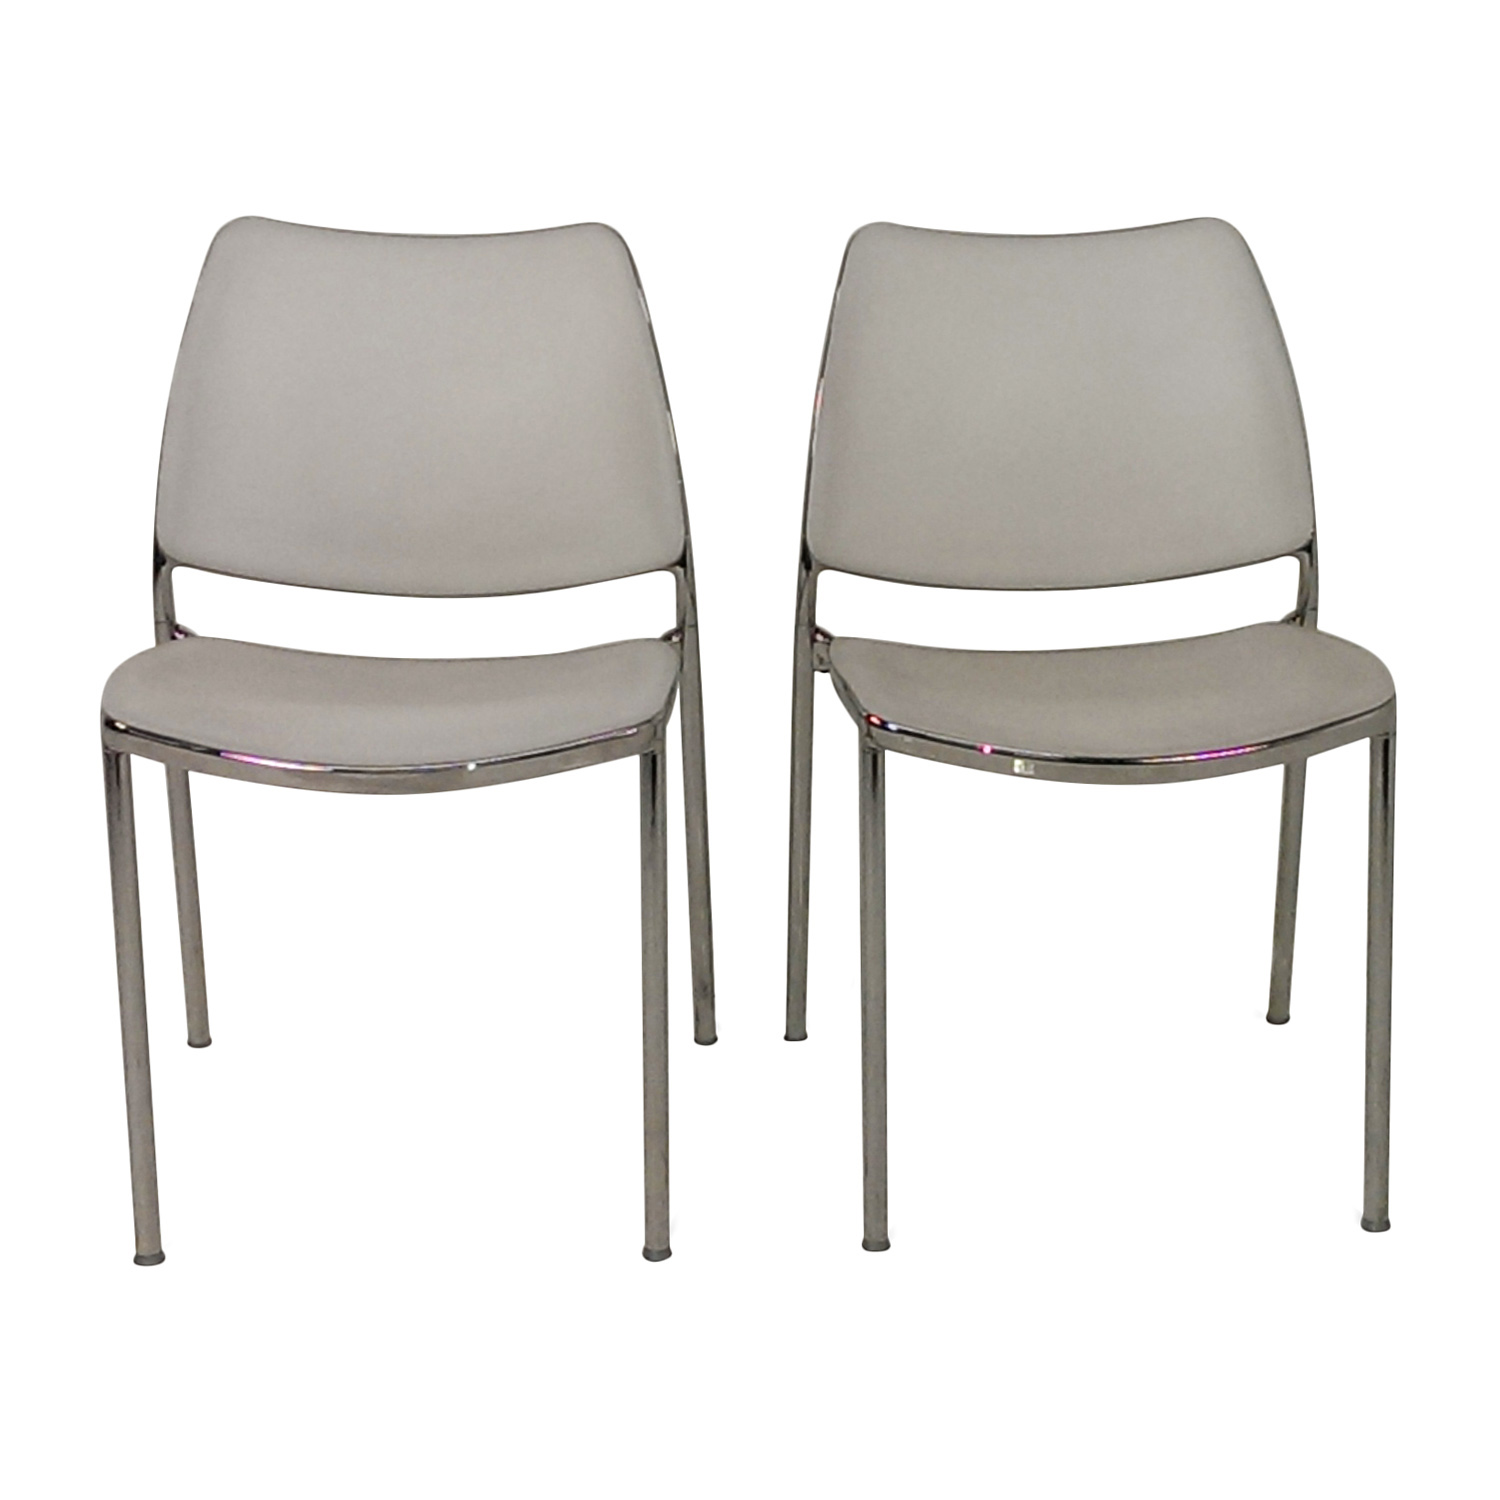 Chairs For The Kitchen: Pair Of White Kitchen Chairs / Chairs